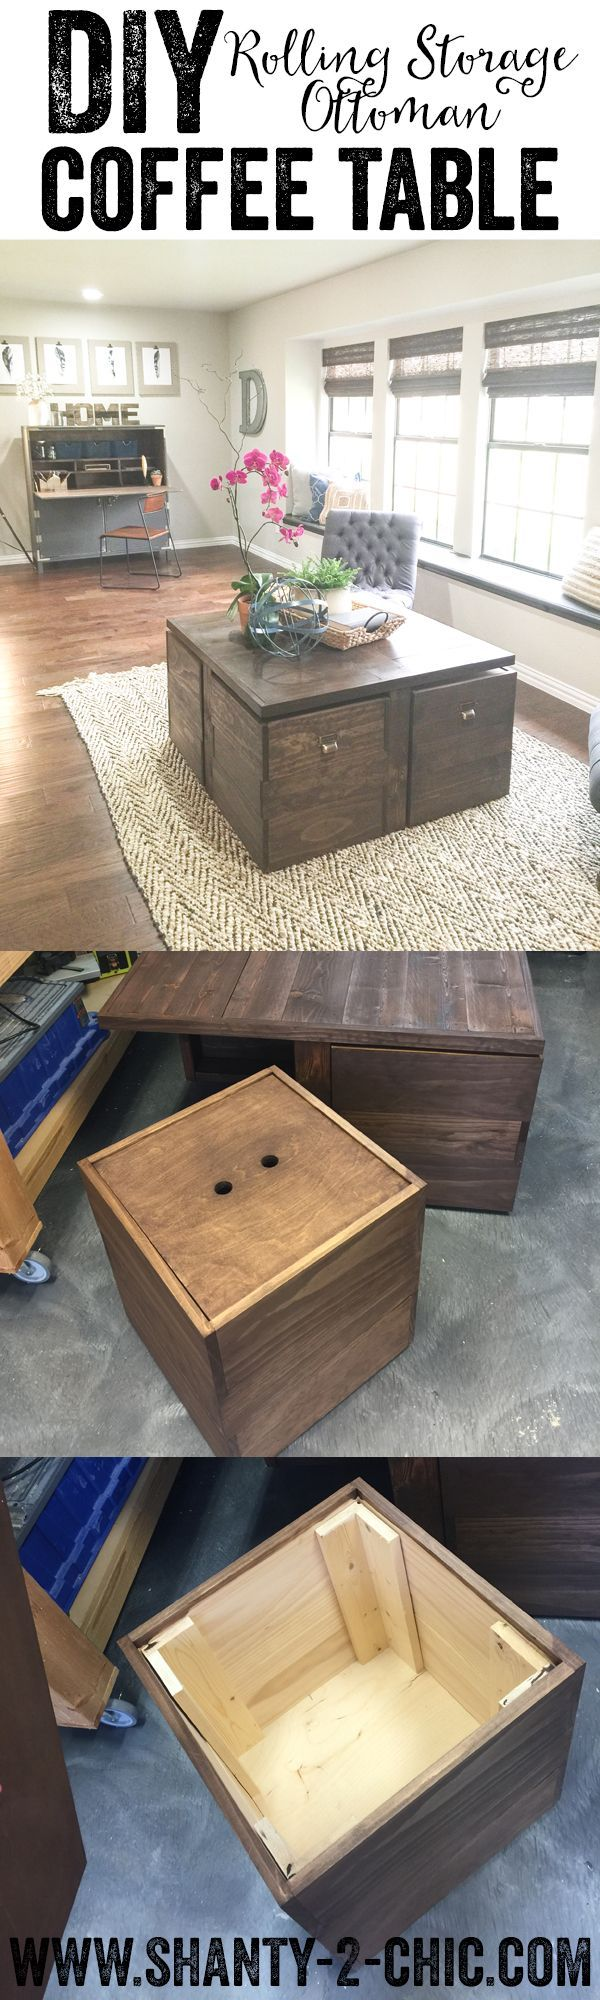 DIY Rolling Storage Ottoman Coffee Table | Beautiful, Juguetes y ...